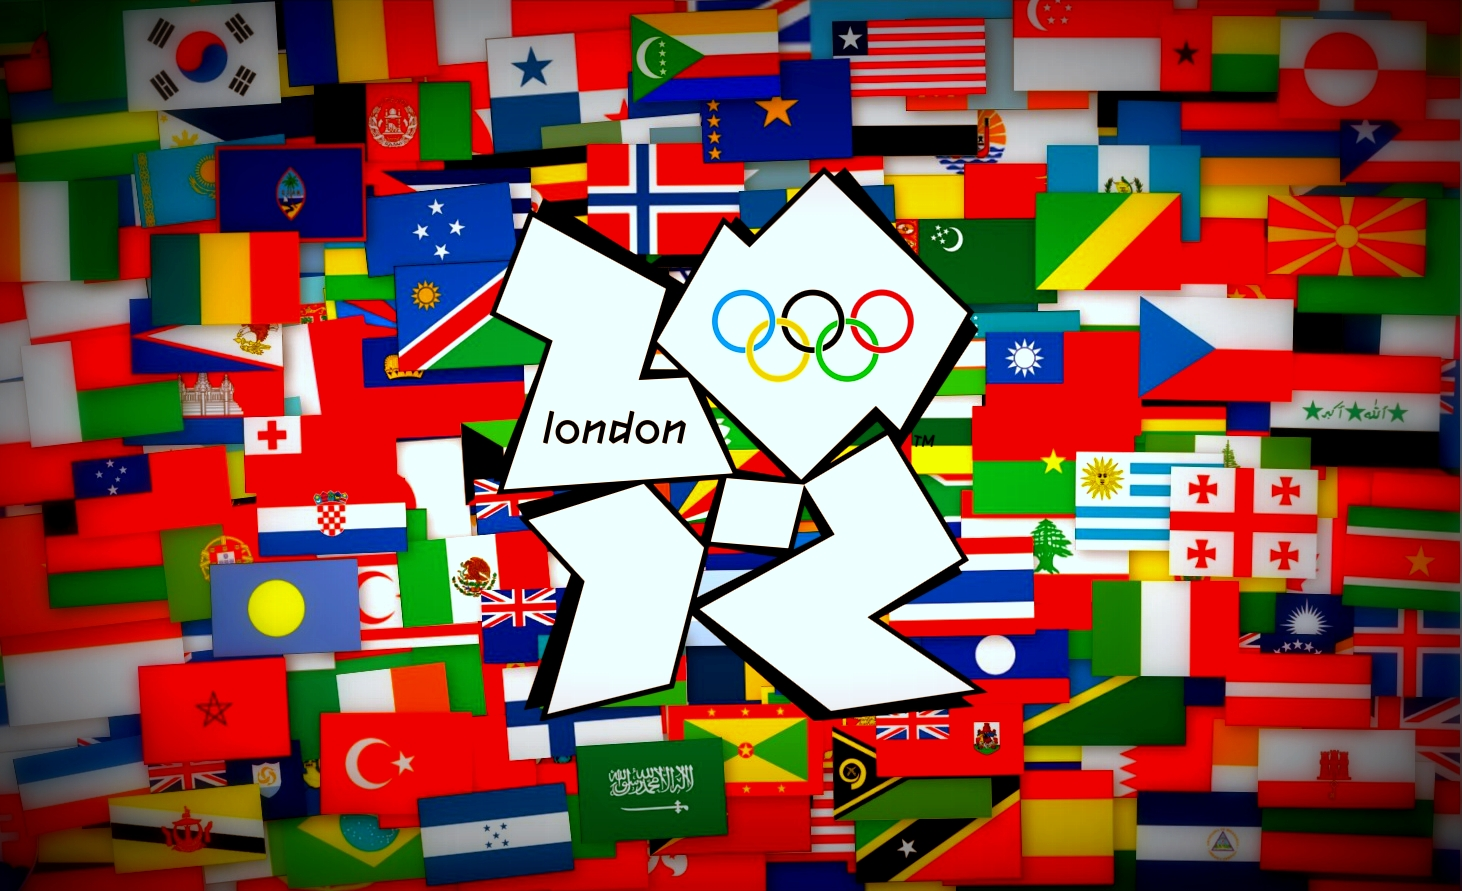 http://4.bp.blogspot.com/-i5YXeFrXFGA/T_i7mvpkzHI/AAAAAAAAA3o/DcDkj8L6ibE/s1600/London+Olympic+Country+Flags+Wallpaper.jpg